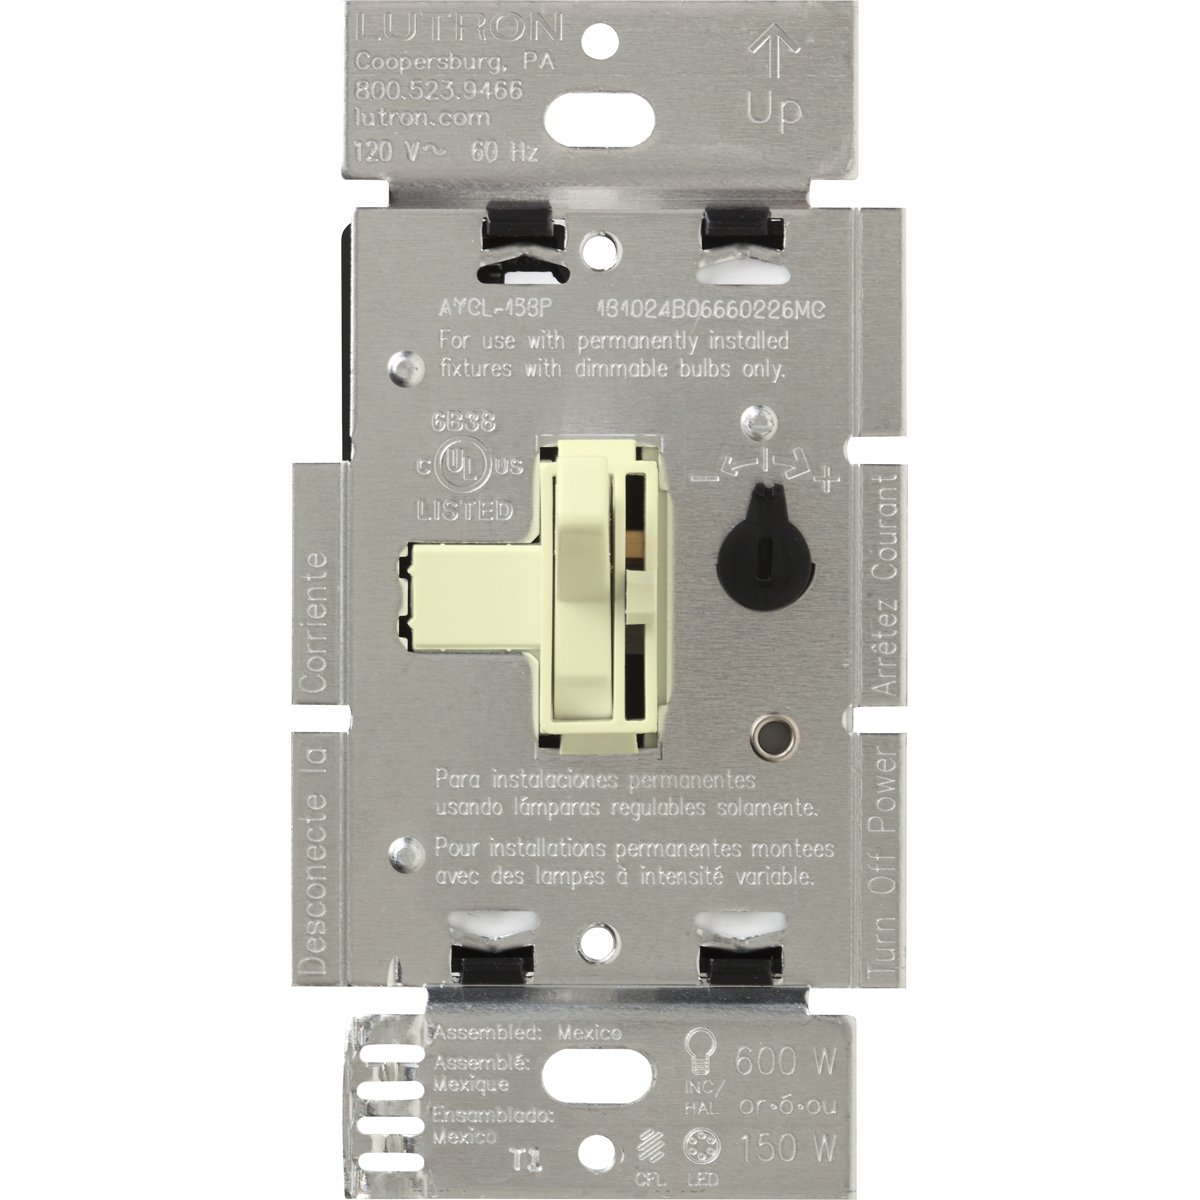 Leviton Dimmer Switch 600W Tsl06 Wiring Diagram from images-na.ssl-images-amazon.com